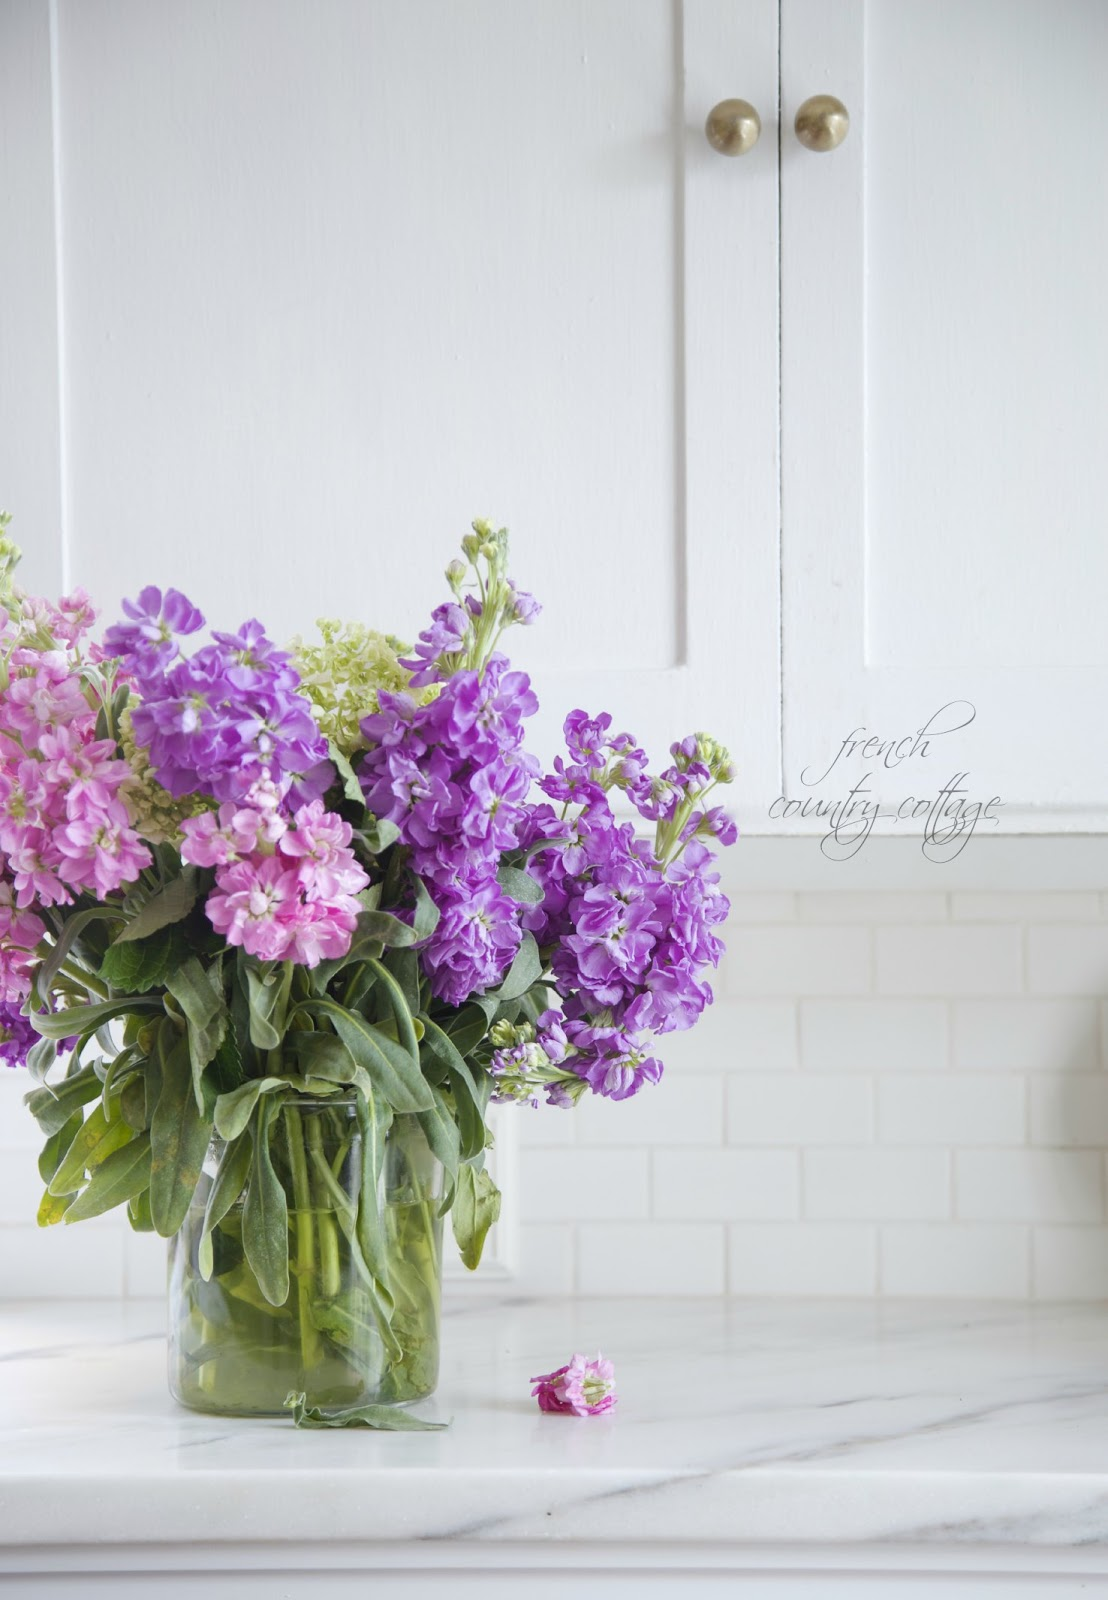 Courtney at french country cottage decorated the kitchen - Marble Counter And Subway Tile Backsplash In Cottage Kitchen